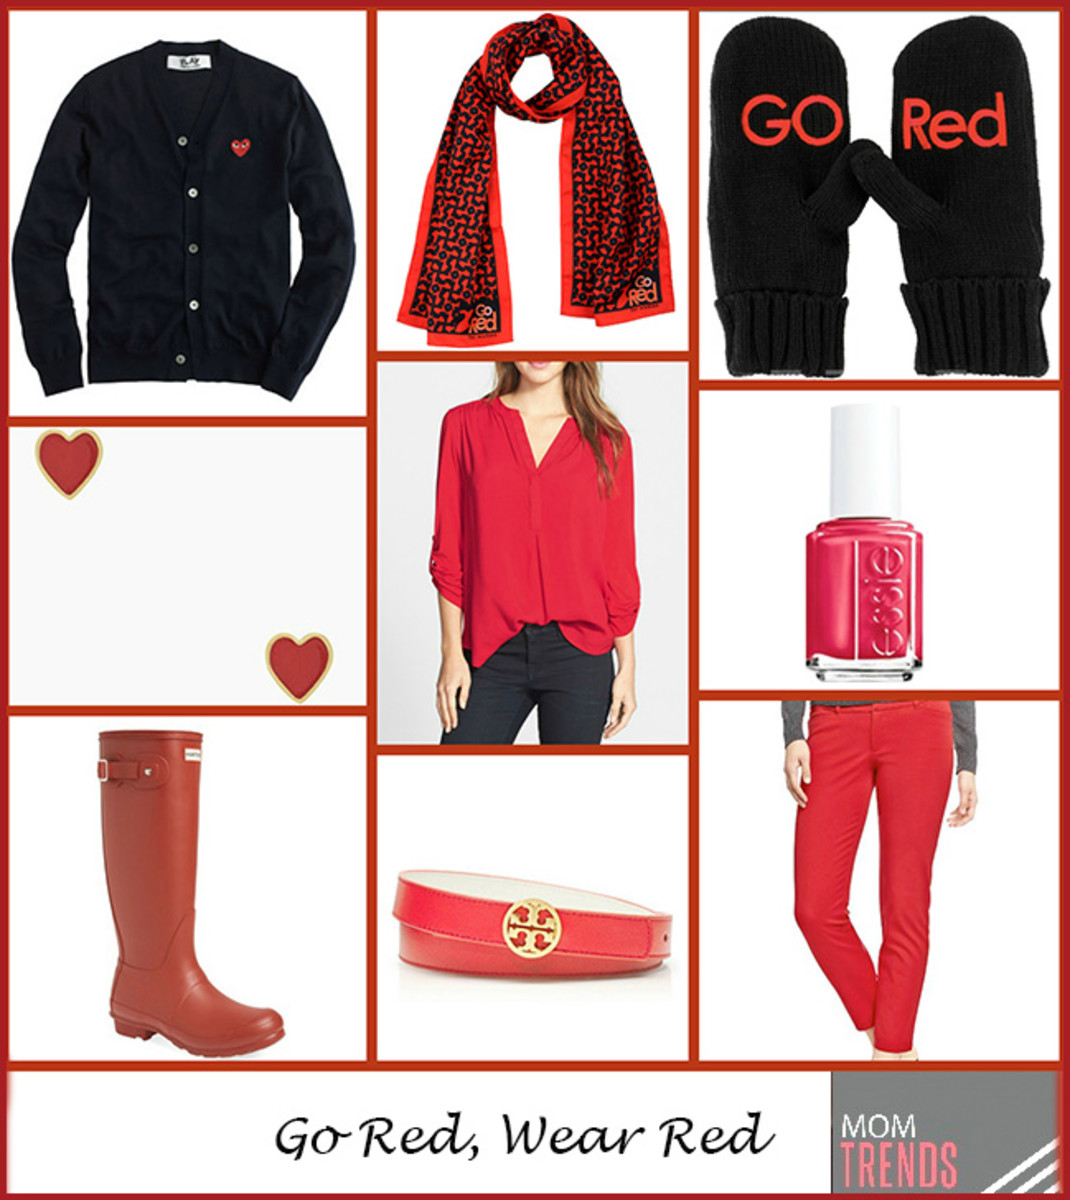 national go red day feb. 6